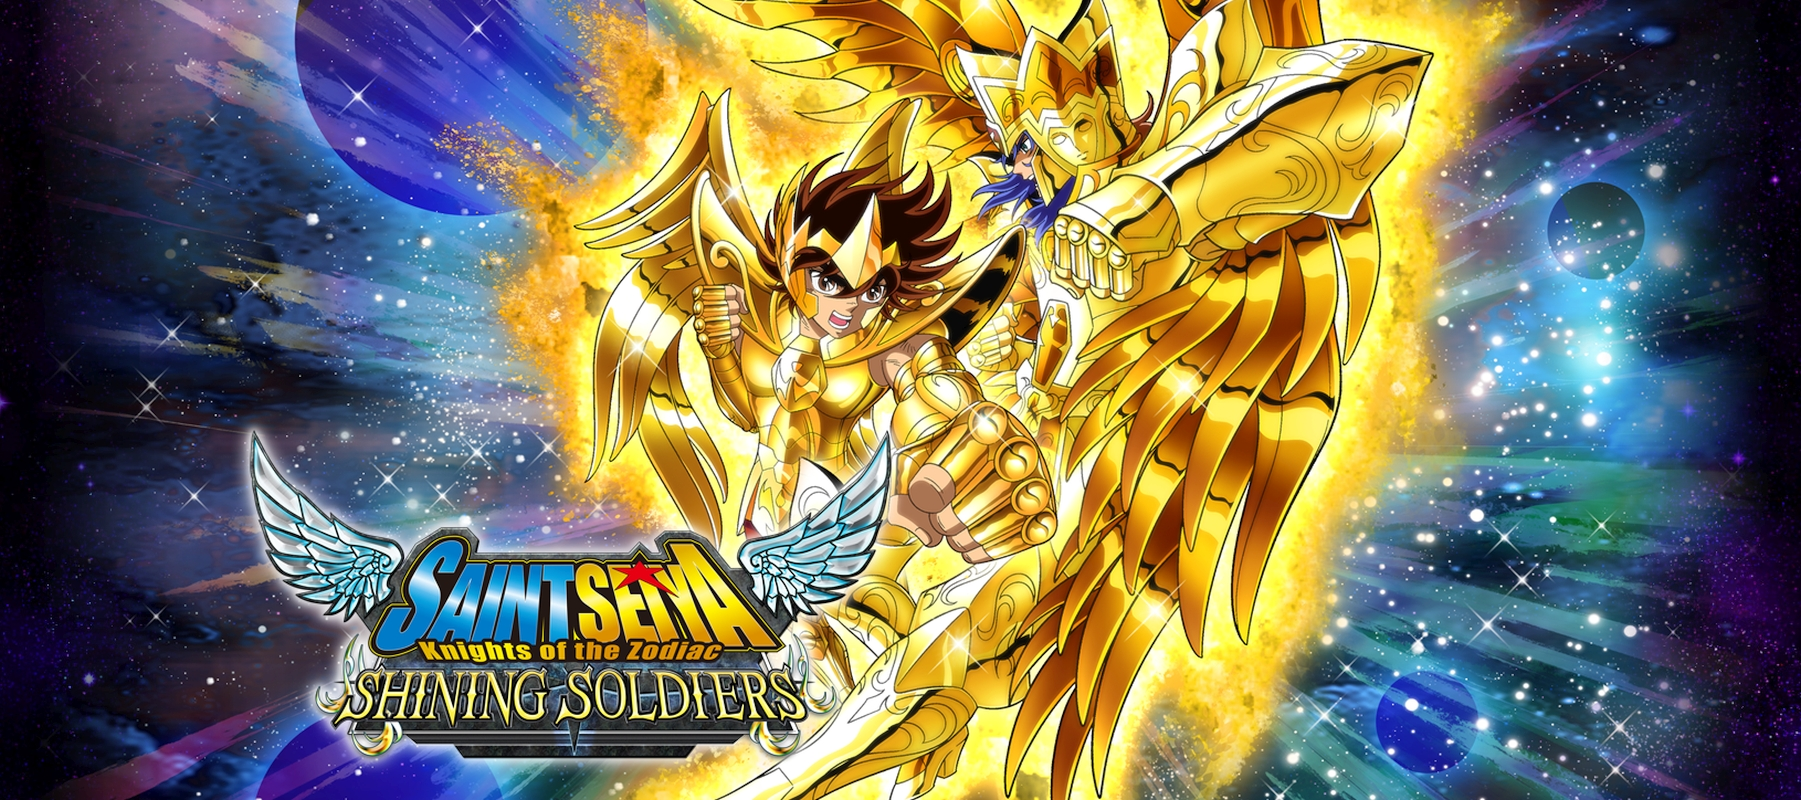 Saint Seiya Shining Soldier Mobile Game Pre-Registration Now Available